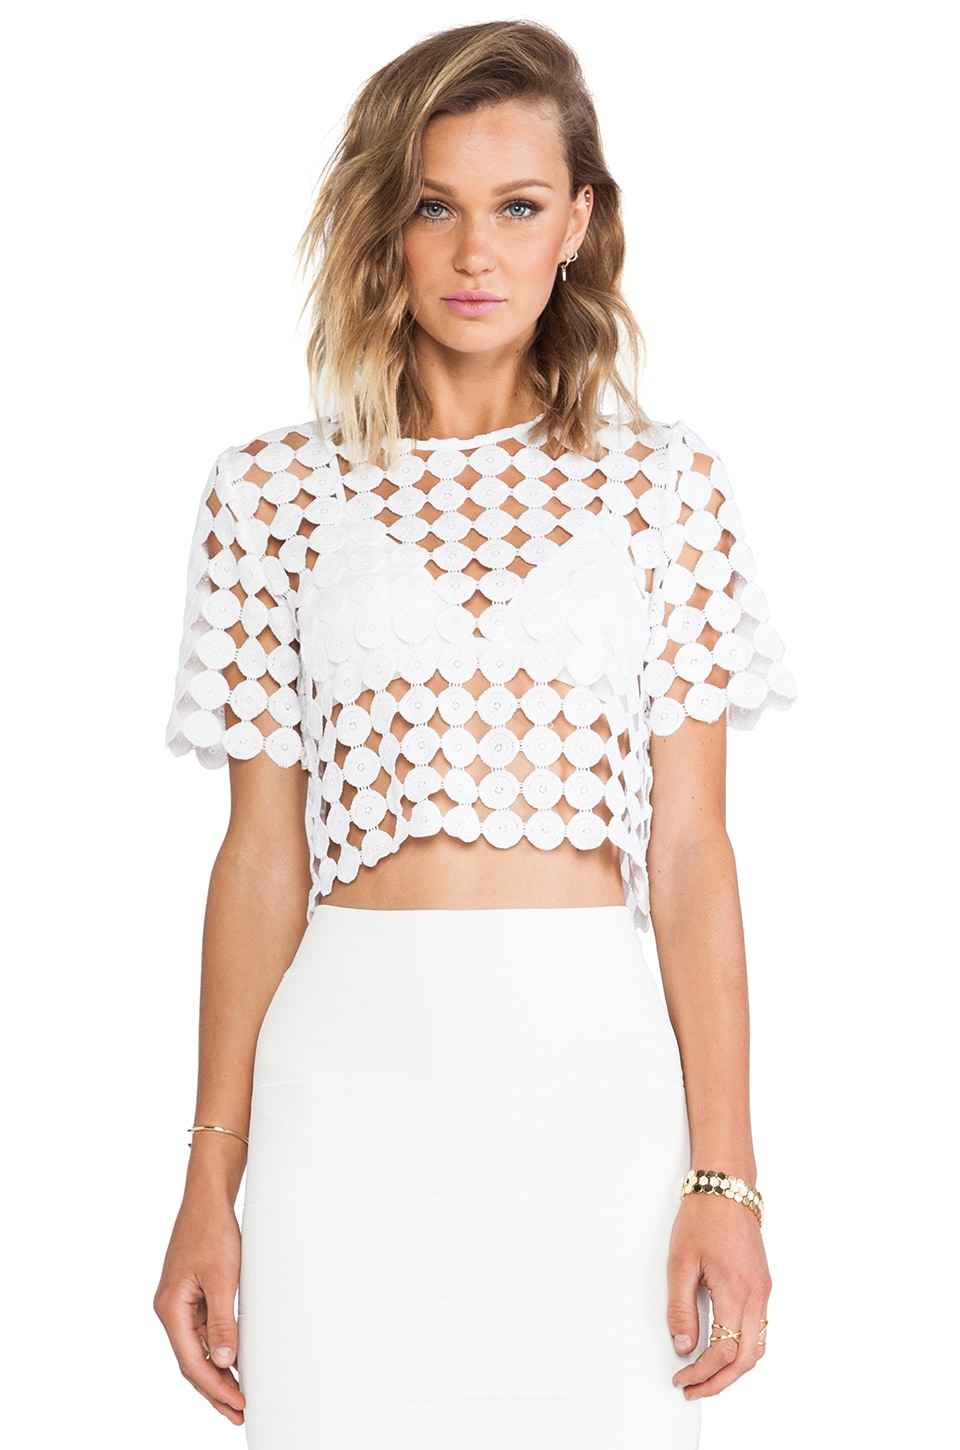 Alexis Lisette Crop Top in Dotted Crochet